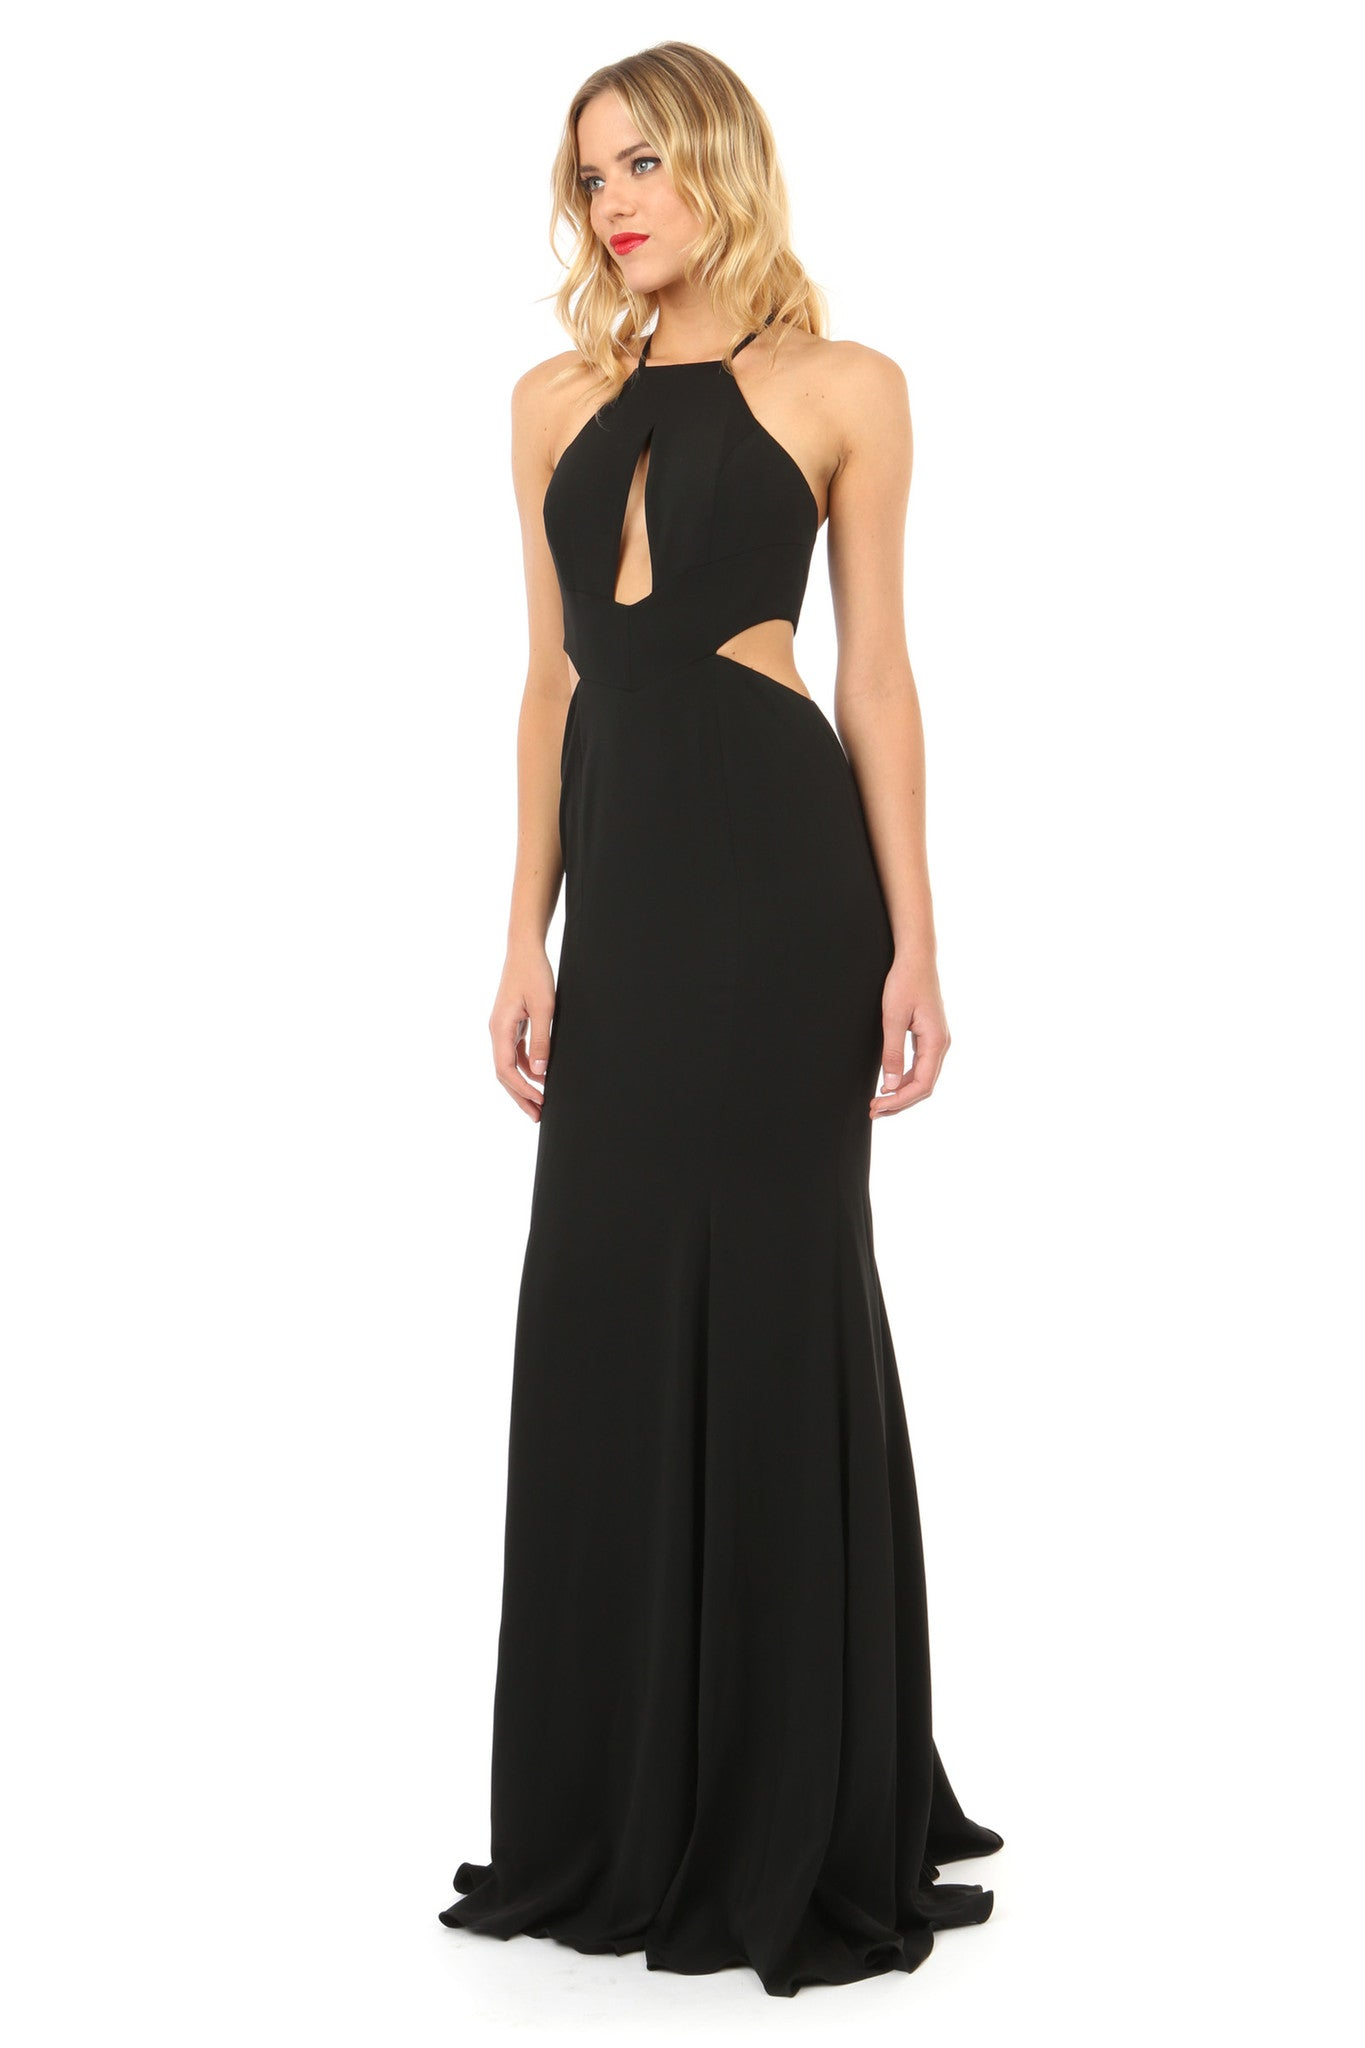 Jay Godfrey Black Cut-Out High Neck Gown - Side View